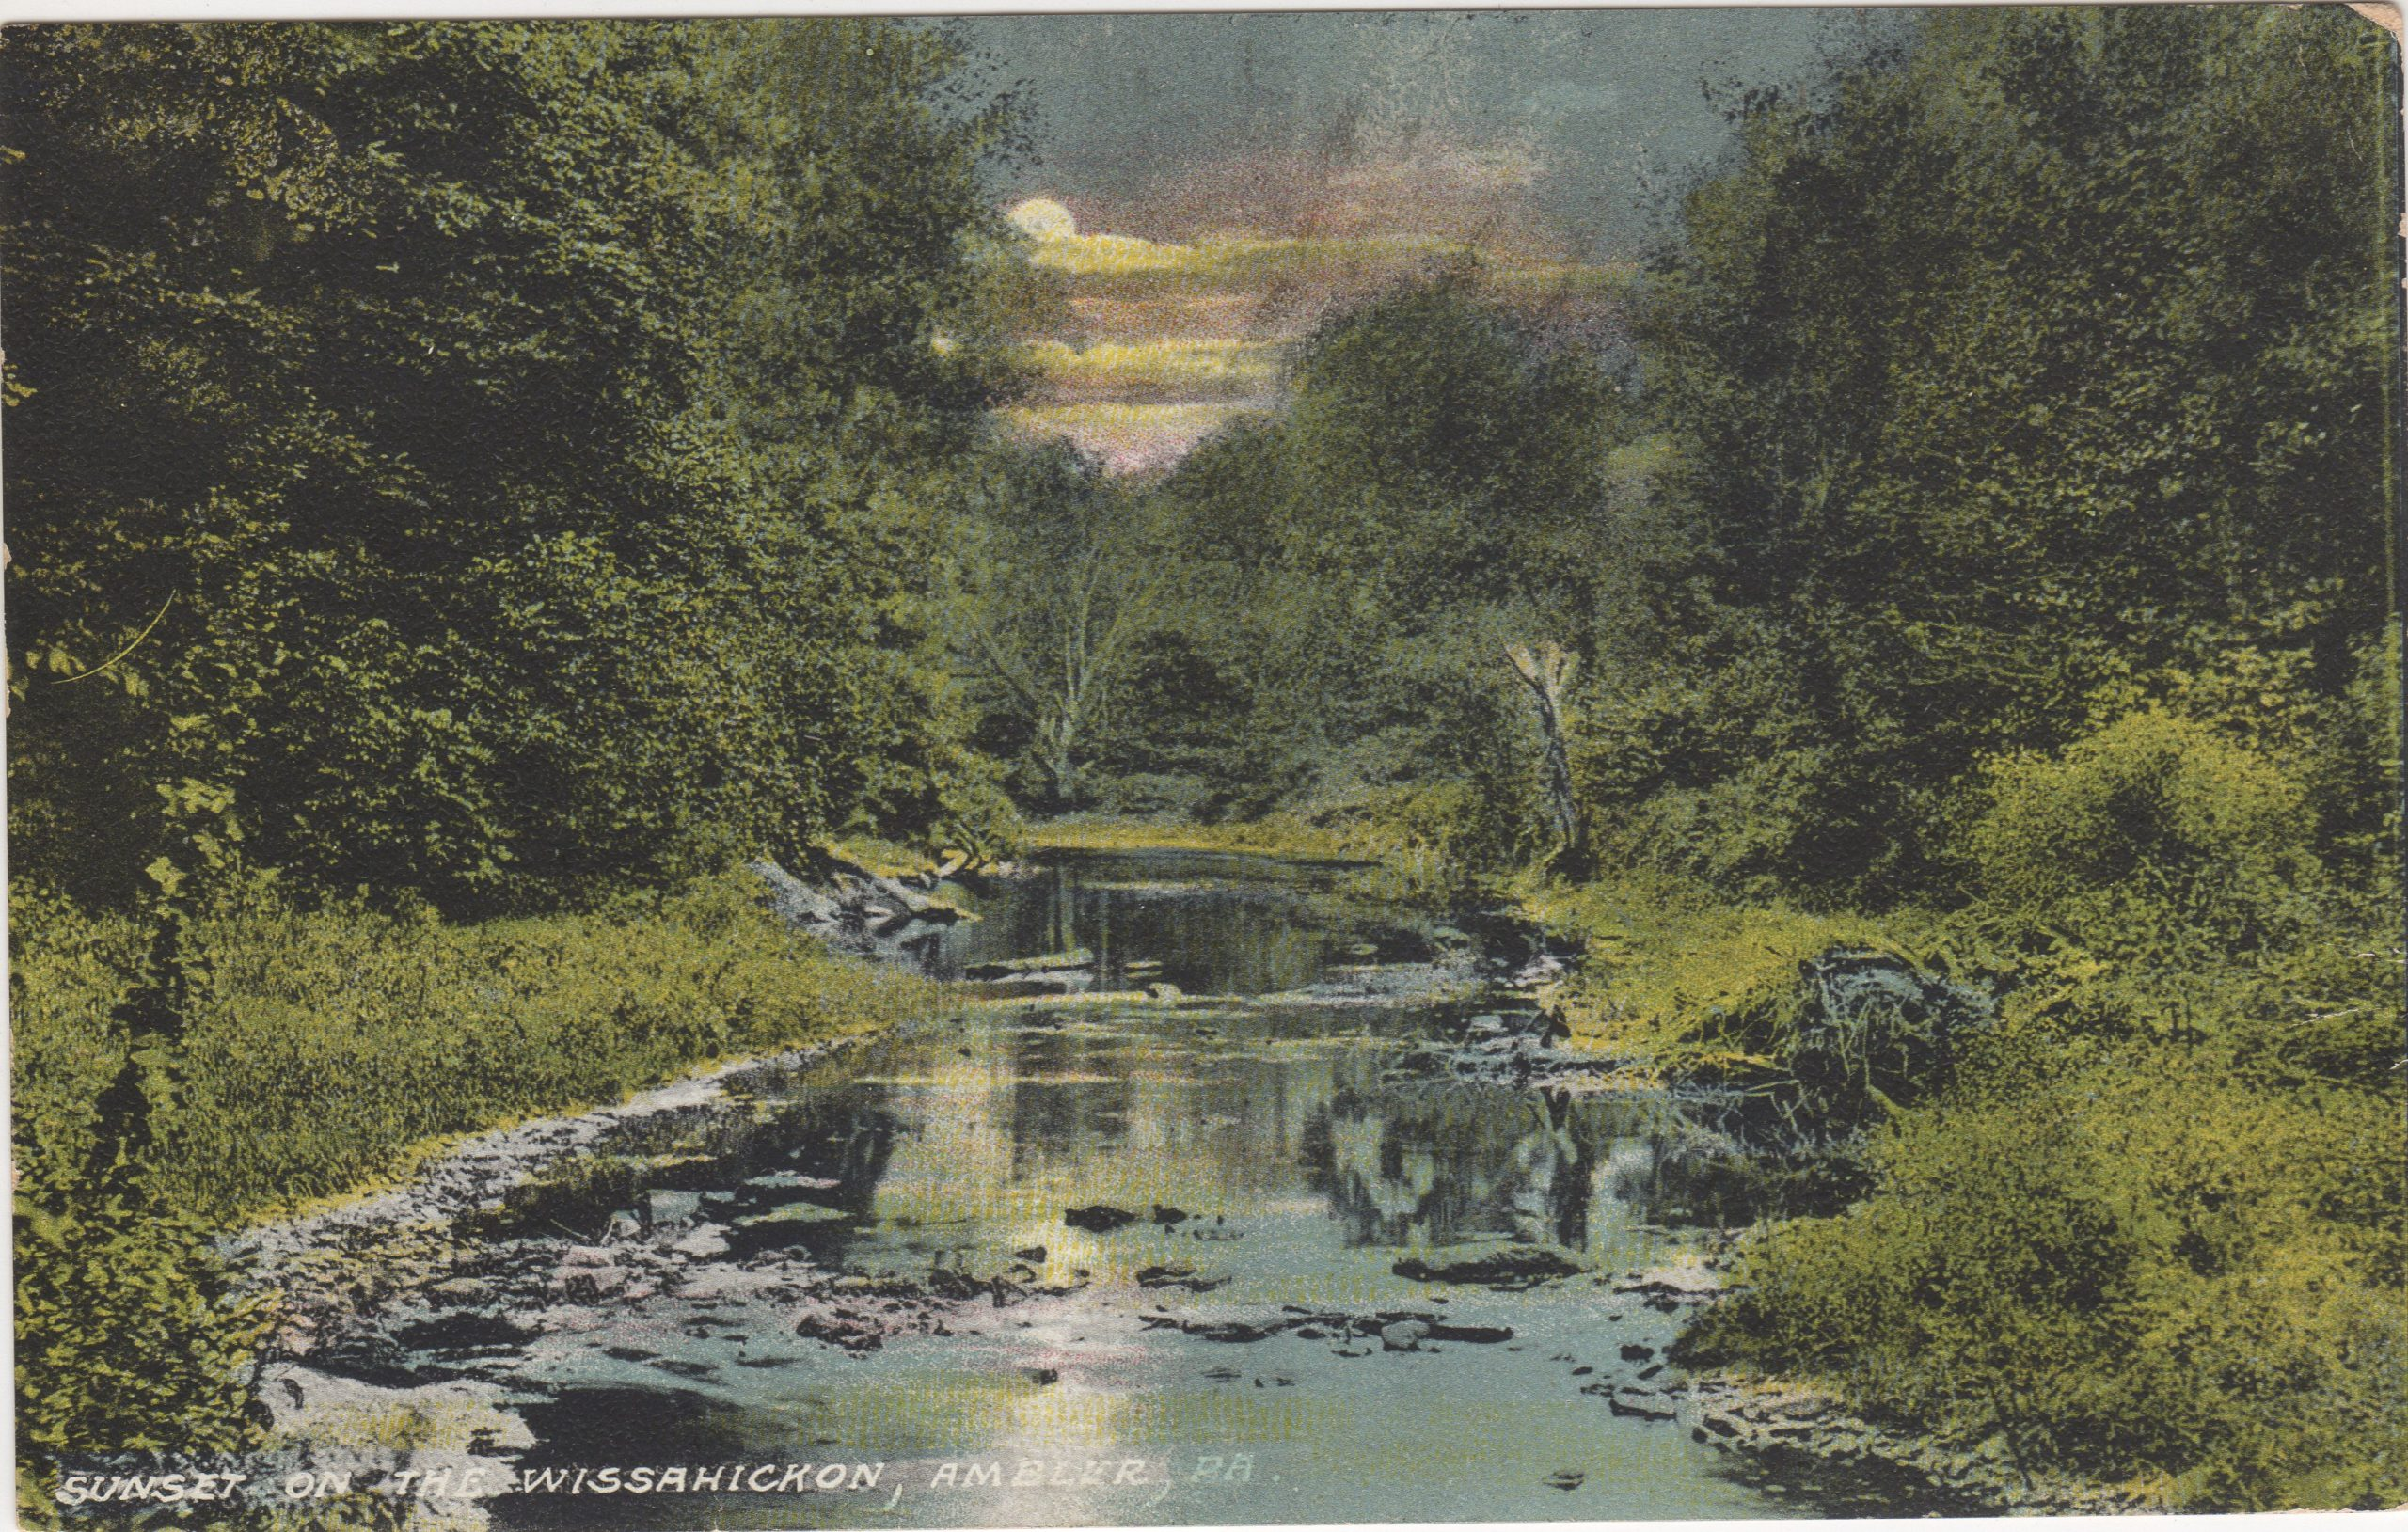 4125.38 Ambler Pa Postcard_Sunset on Wissahickon Creek_ circa 1913